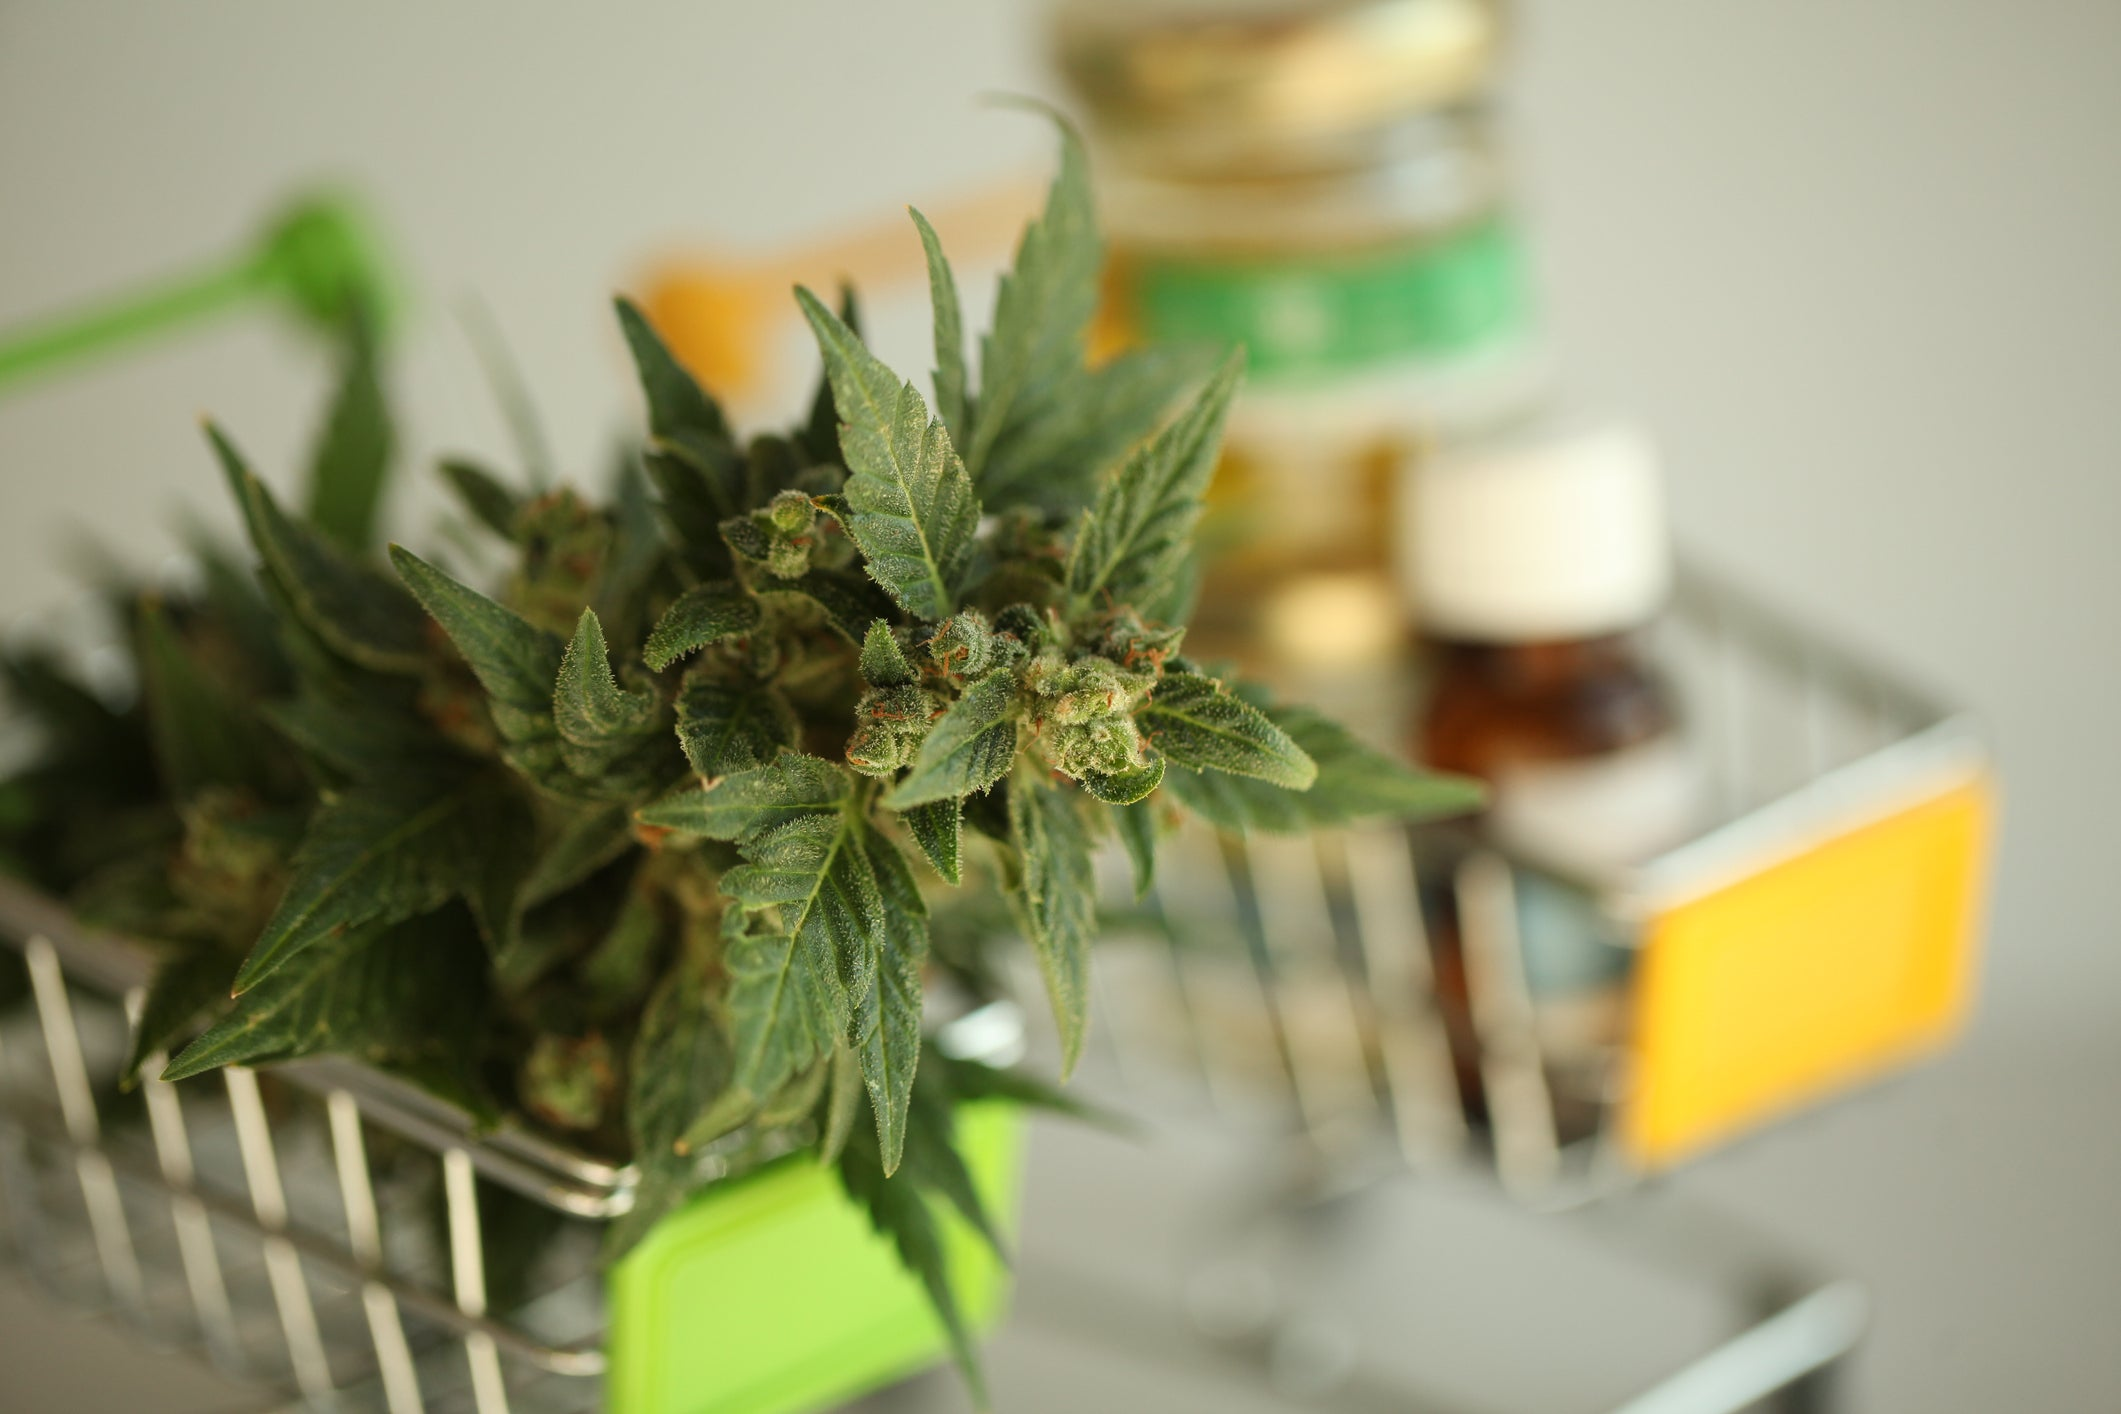 Two miniature shopping carts, one of which contains a cannabis flower, the other of which holds vials of cannabidiol oil.